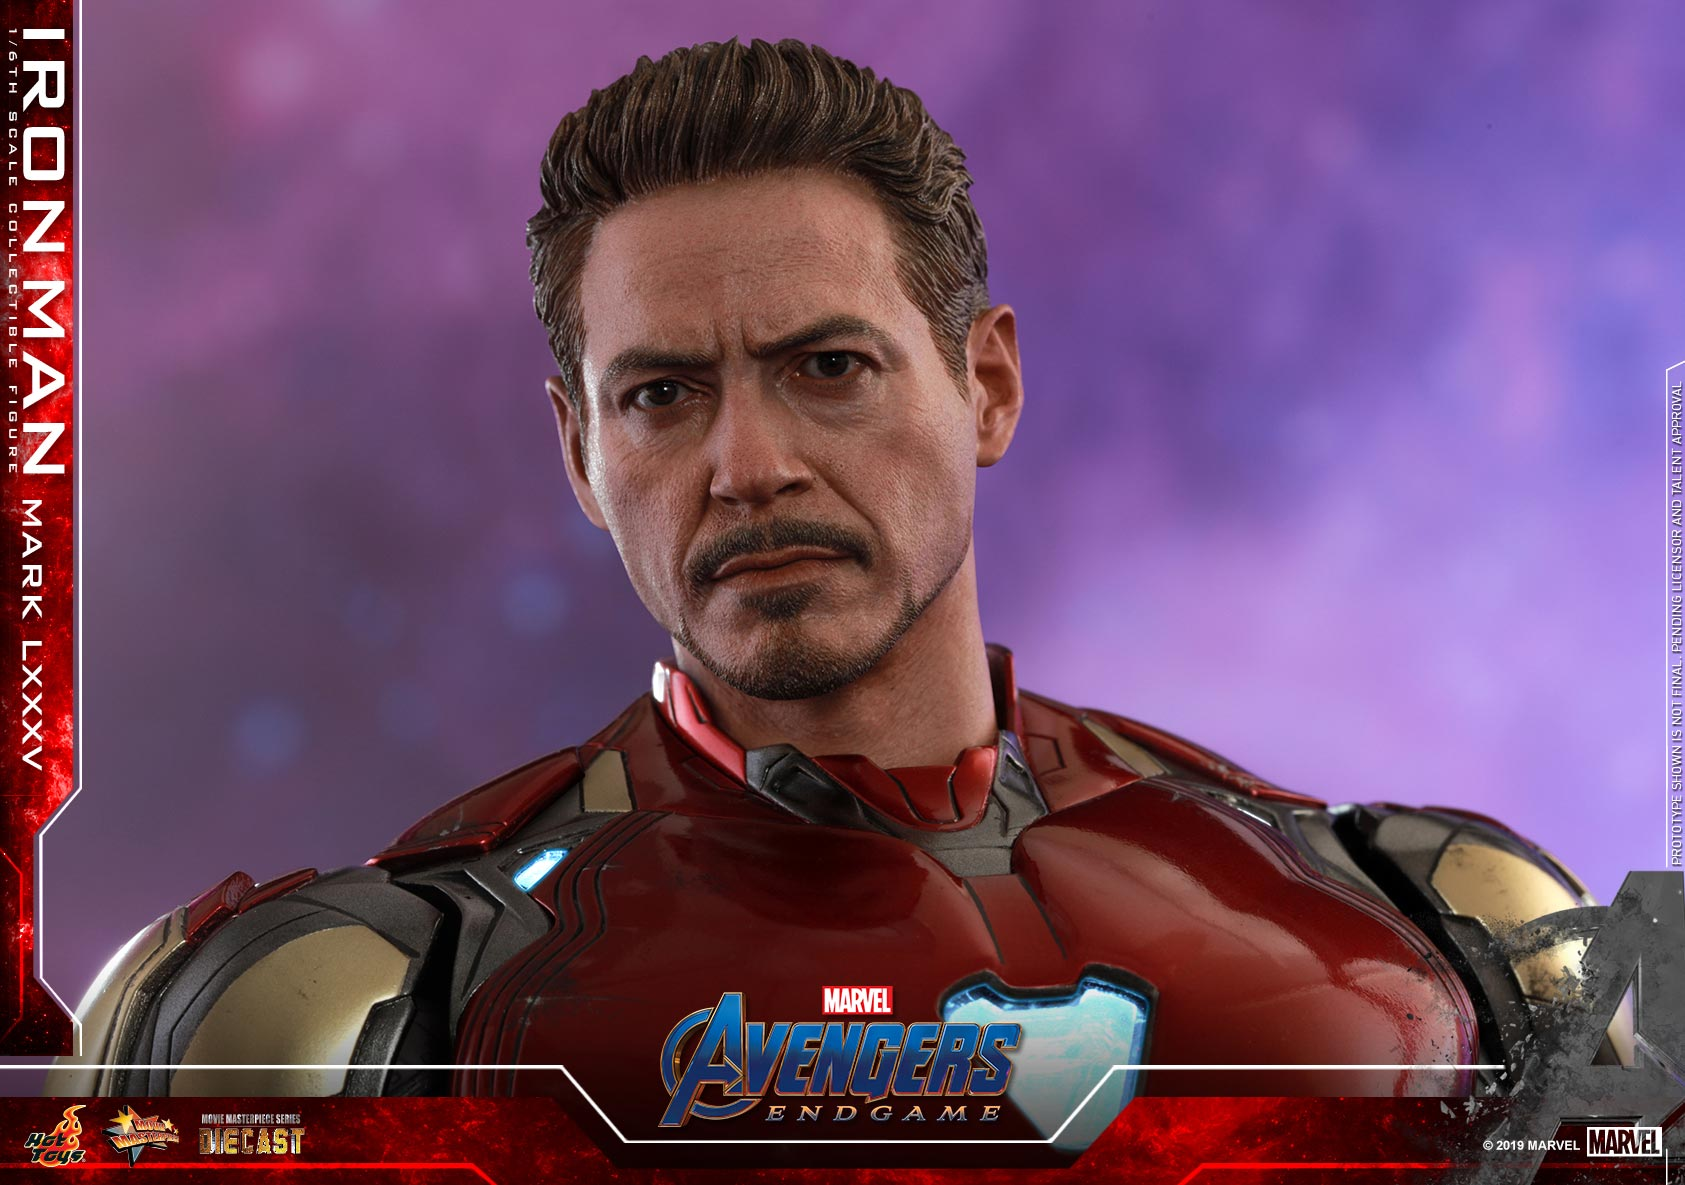 Hot-Toys---Avengers-4---Iron-Man-Mark-LXXXV-collectible-figure_PR19